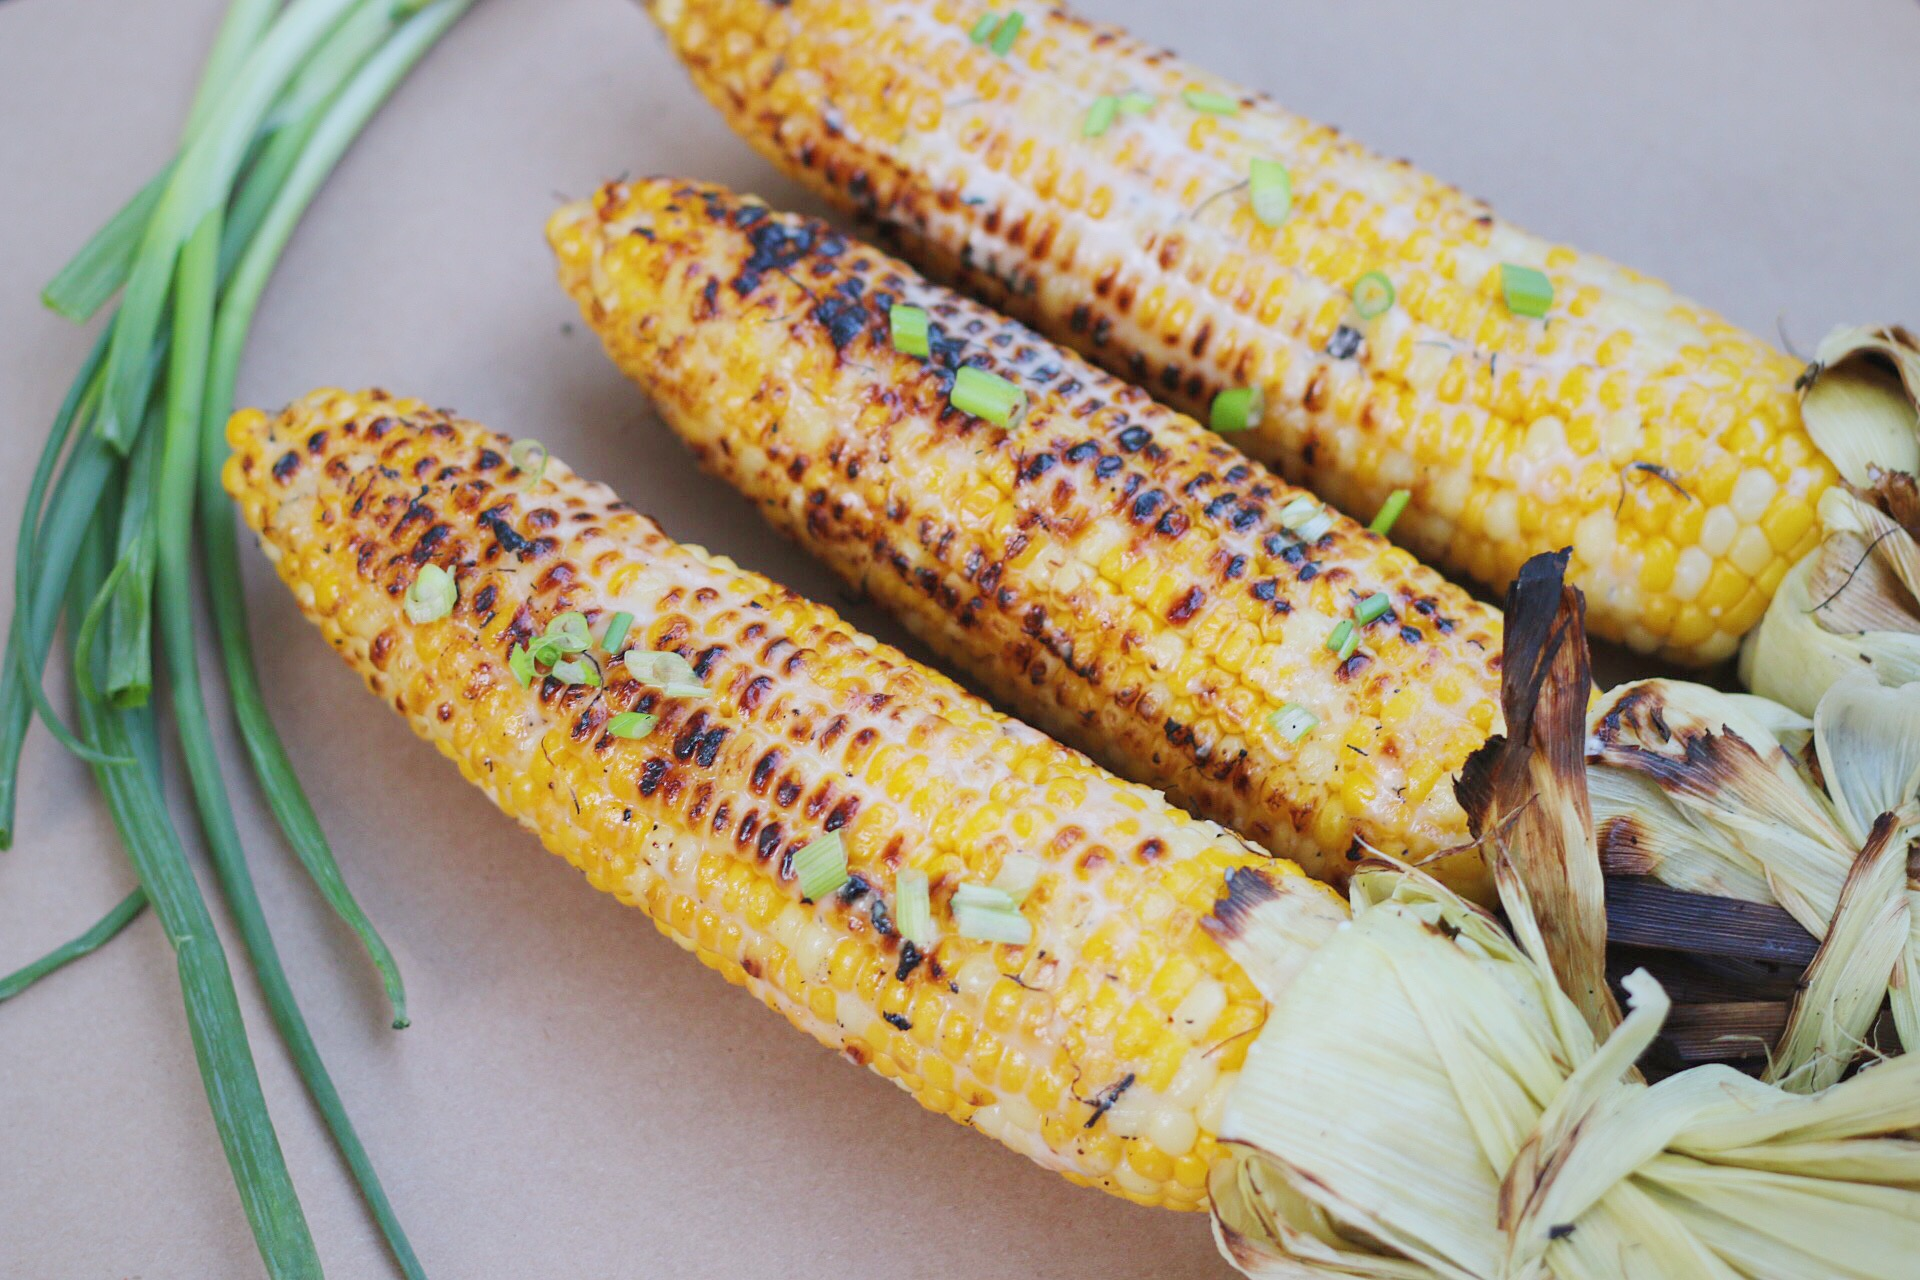 Look at the charred on the corn. That's the best part. The coconut milk has caramelized and gave a nice crisp bite to the corn.